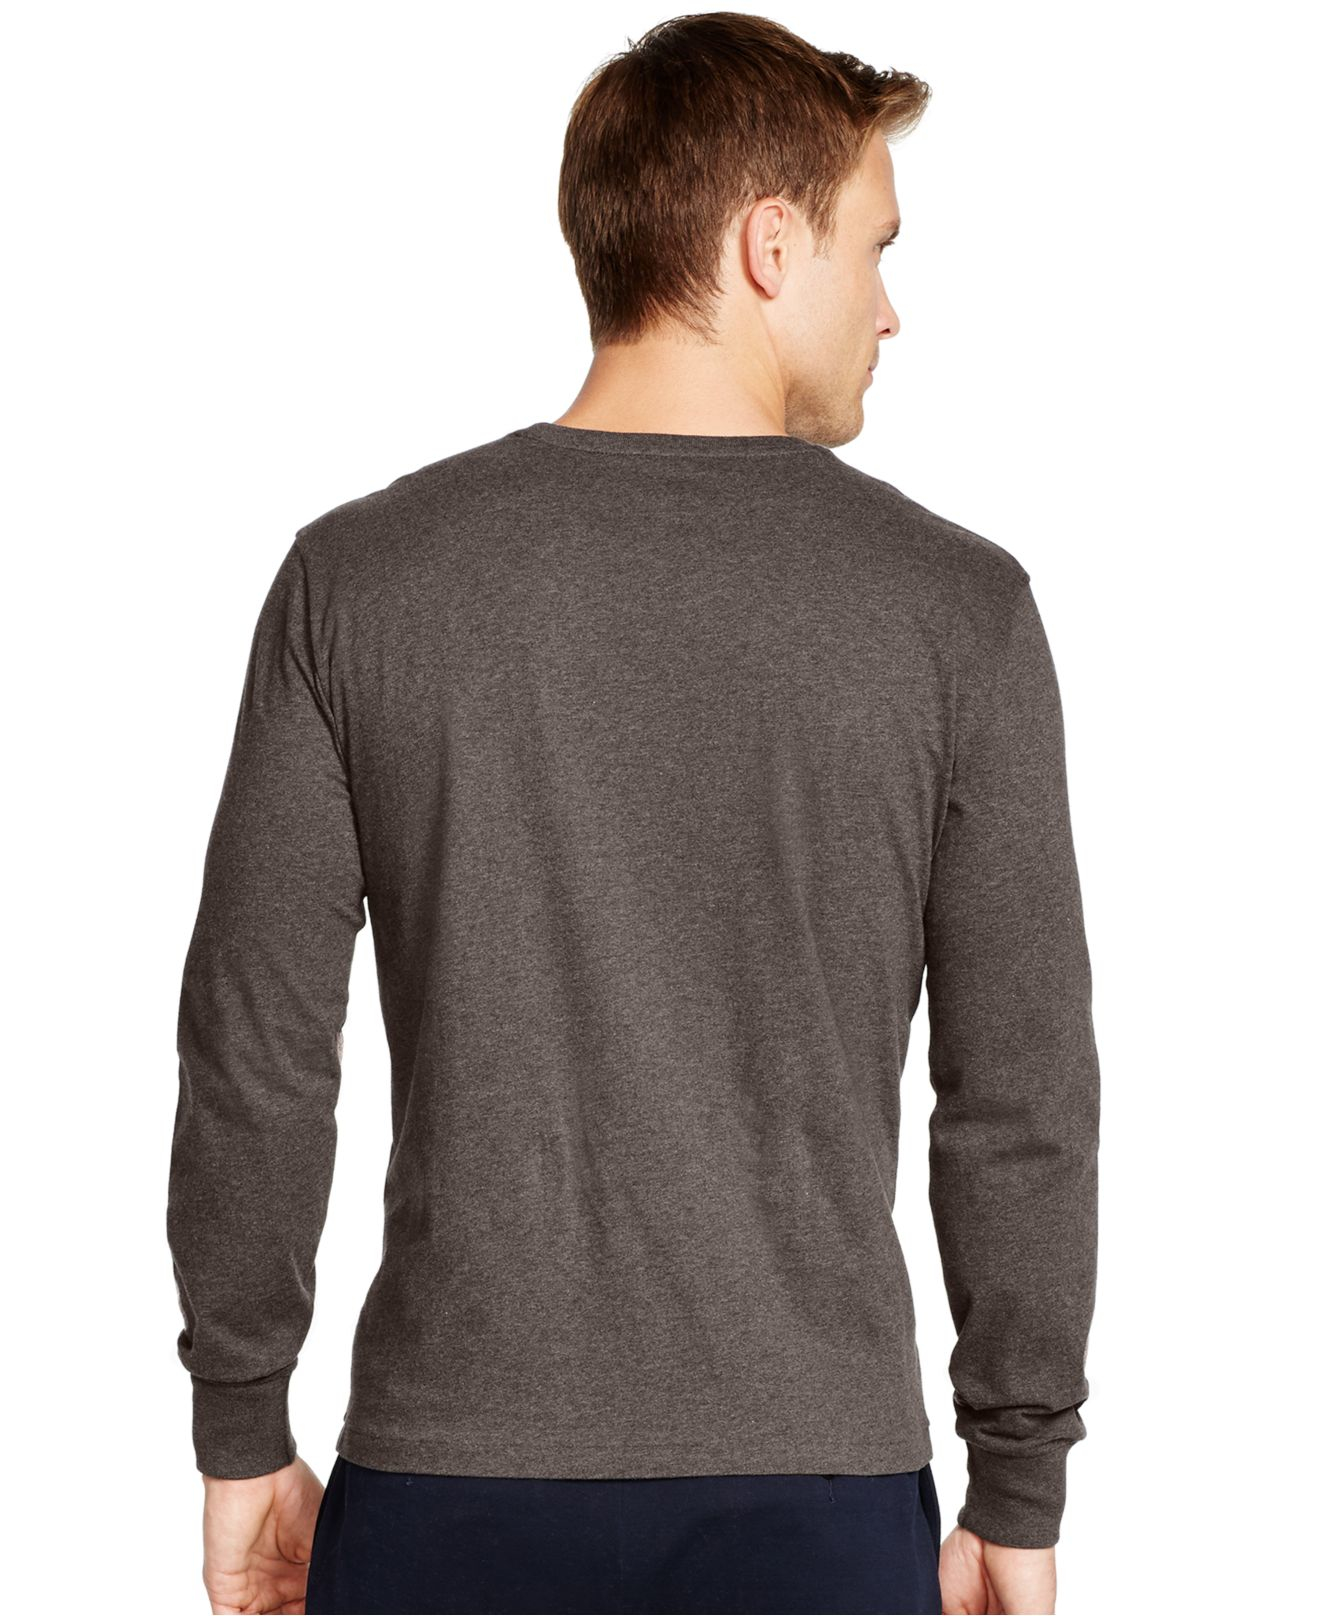 polo ralph lauren long sleeved jersey pocket crewneck in gray for men dark charcoal heather lyst. Black Bedroom Furniture Sets. Home Design Ideas